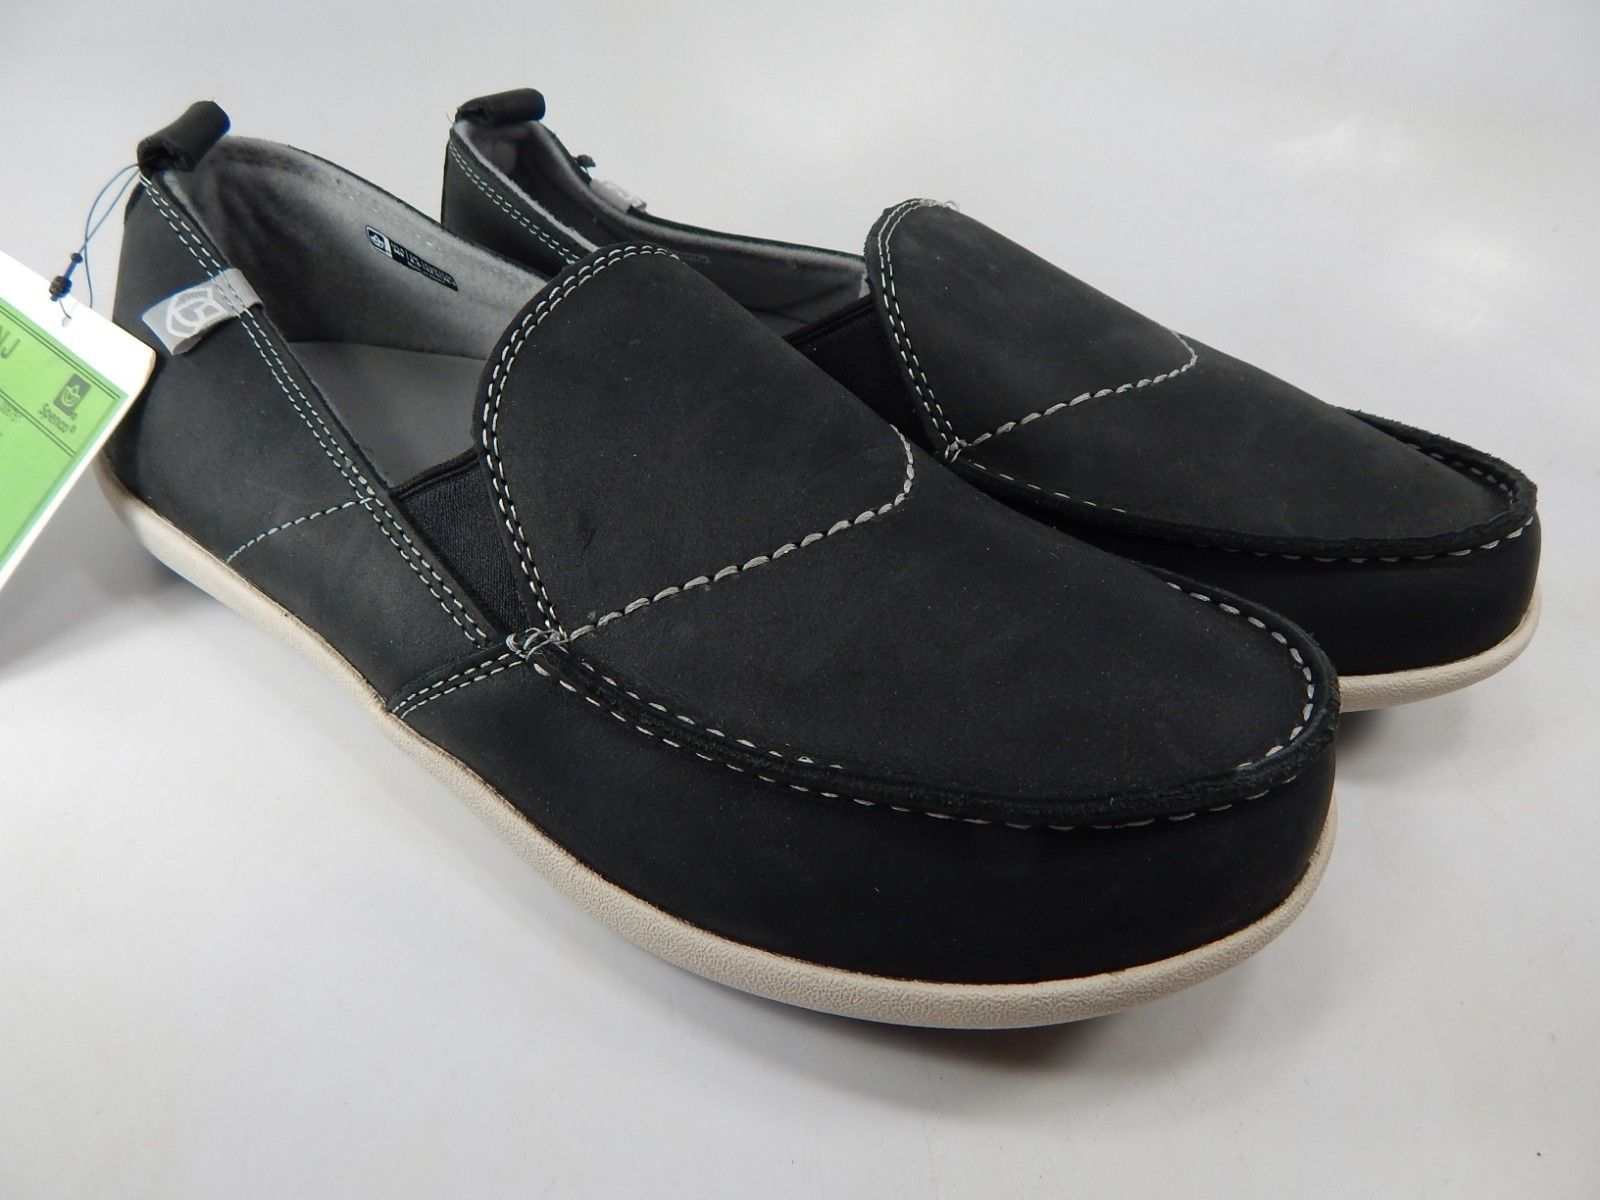 Spenco Siesta Size US 9 M (D) EU 42.5 Men's Slip On Casual Shoes Charcoal Grey